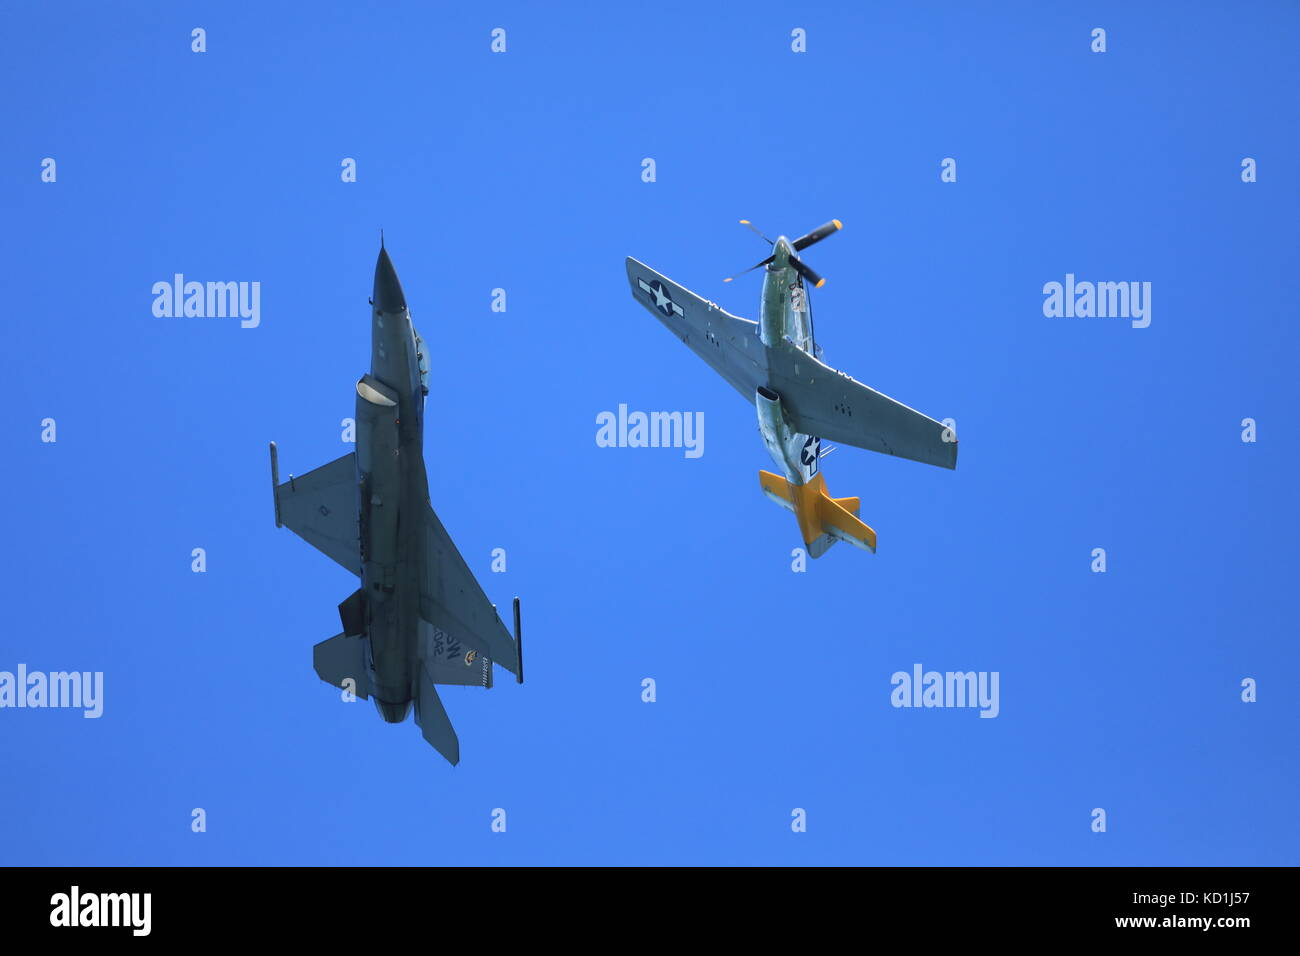 F-16 and P-51 Fighter Jets Fly Together at San Francisco Fleet Week Airshow, Old and New Stock Photo